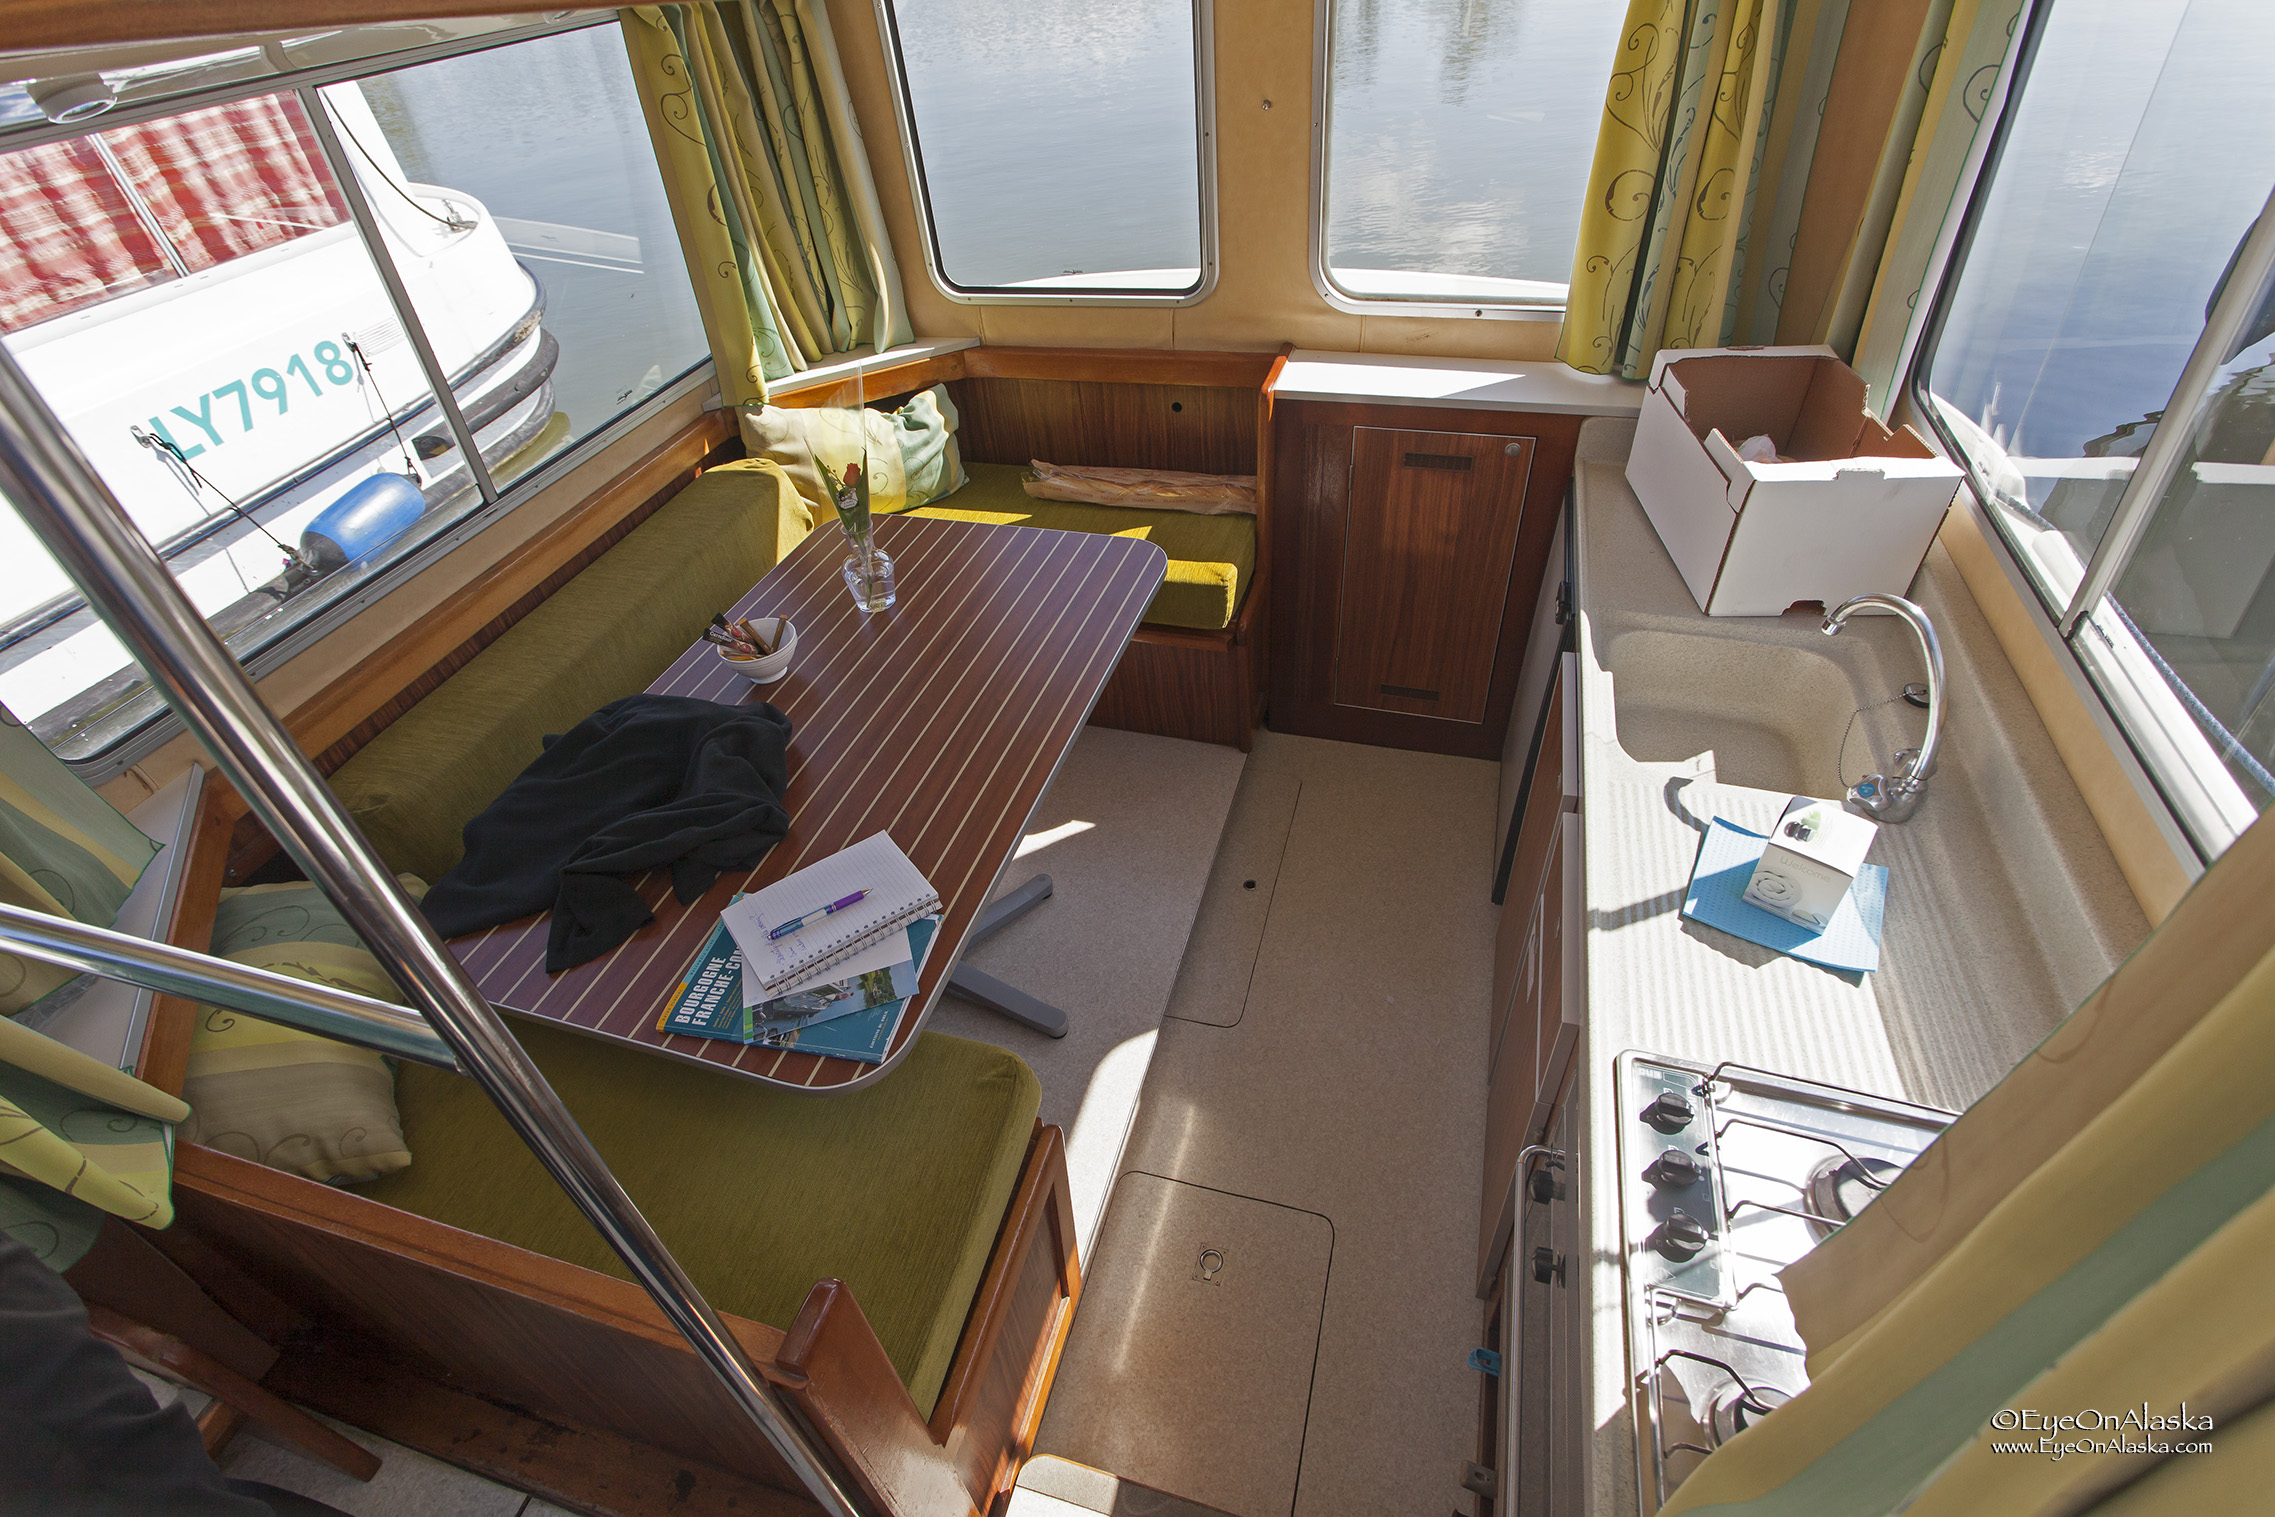 The dining area and kitchen on our little canal boat.  It's just about the same size as our motorhome.